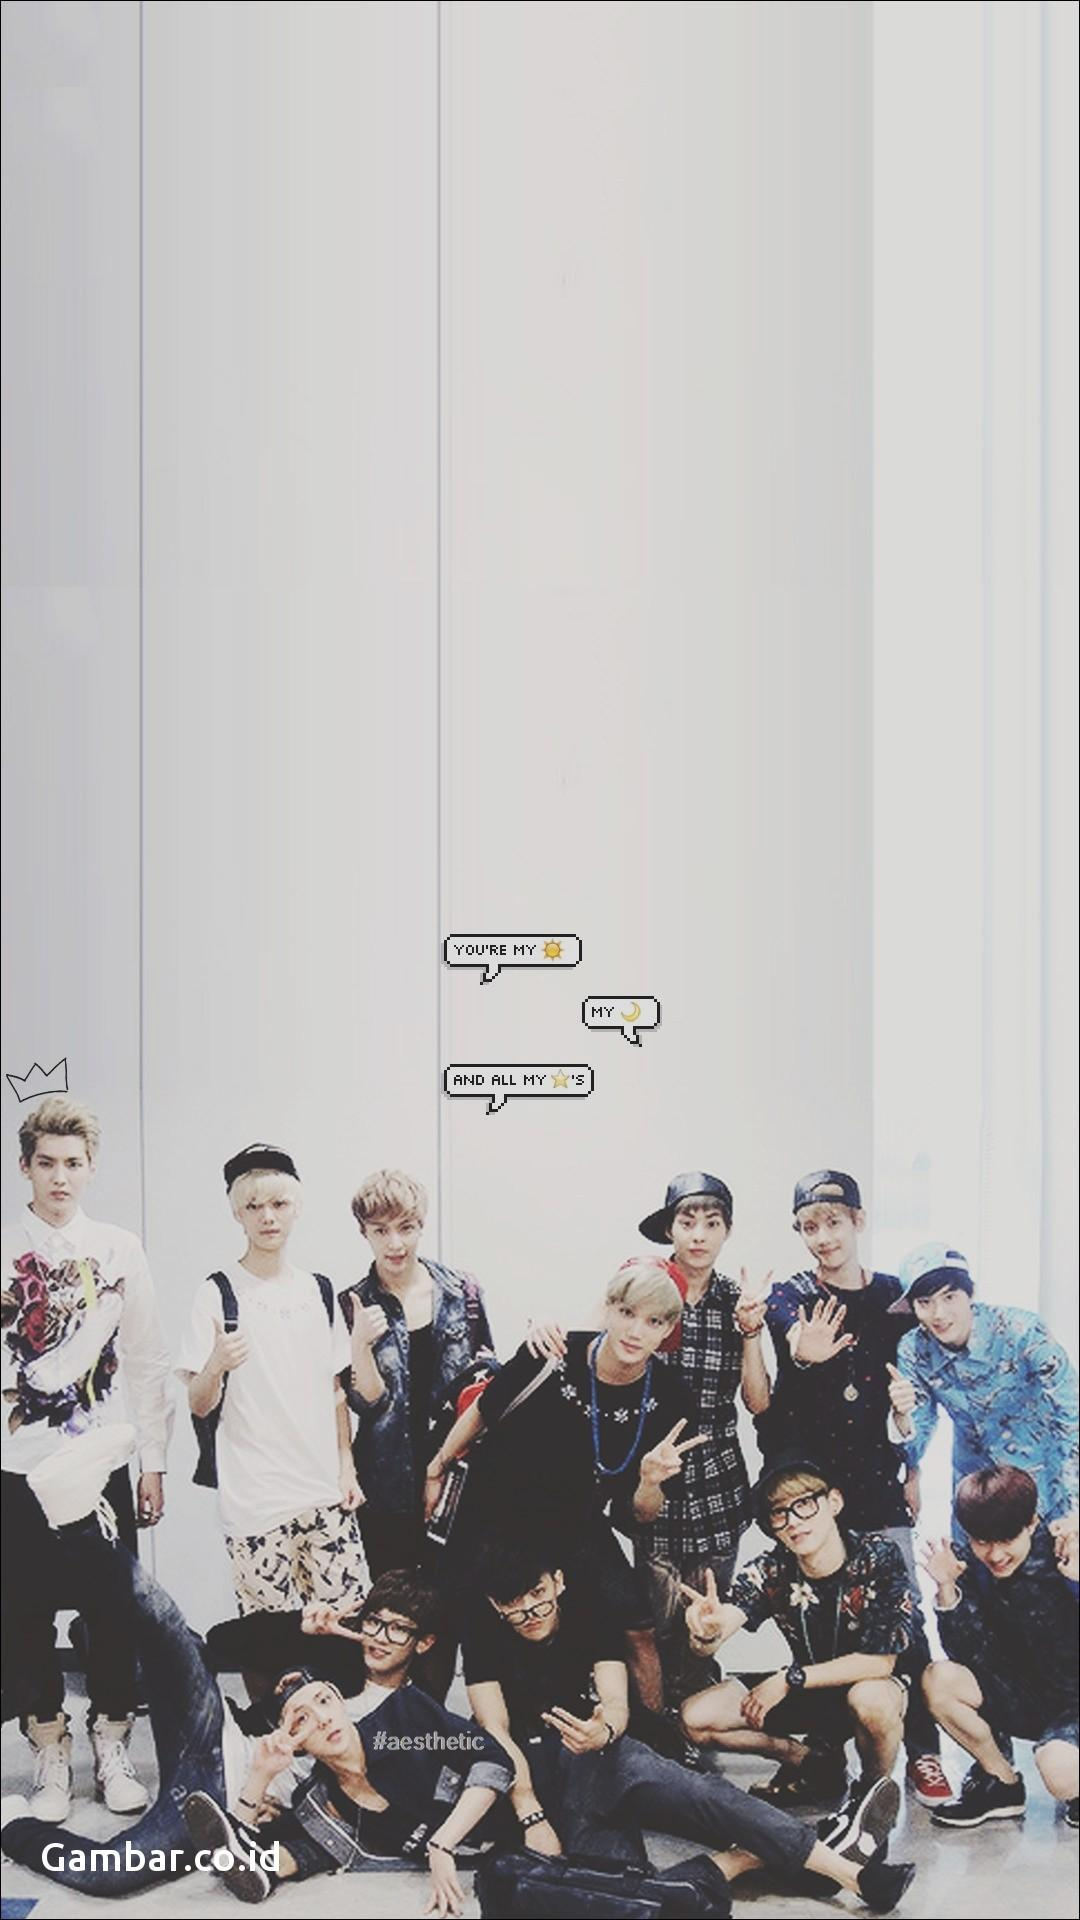 Aesthetic Exo Wallpapers Wallpaper Cave